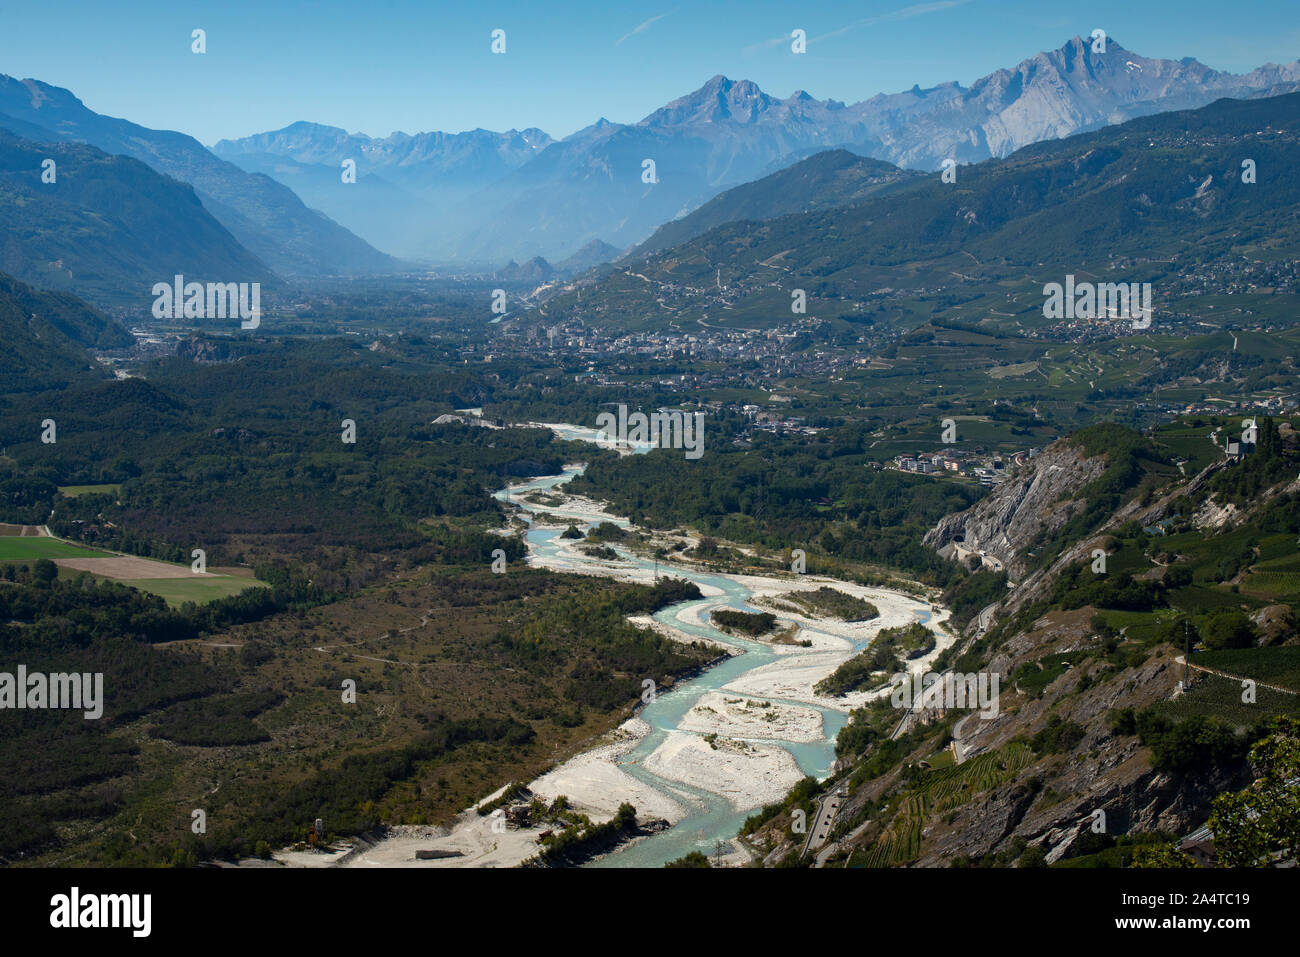 Rhone Valley Valais Switzerland looking east towards Sierre Sept 2019 The River Rhone slows down on the flat valley floor resulting in silting up prob Stock Photo